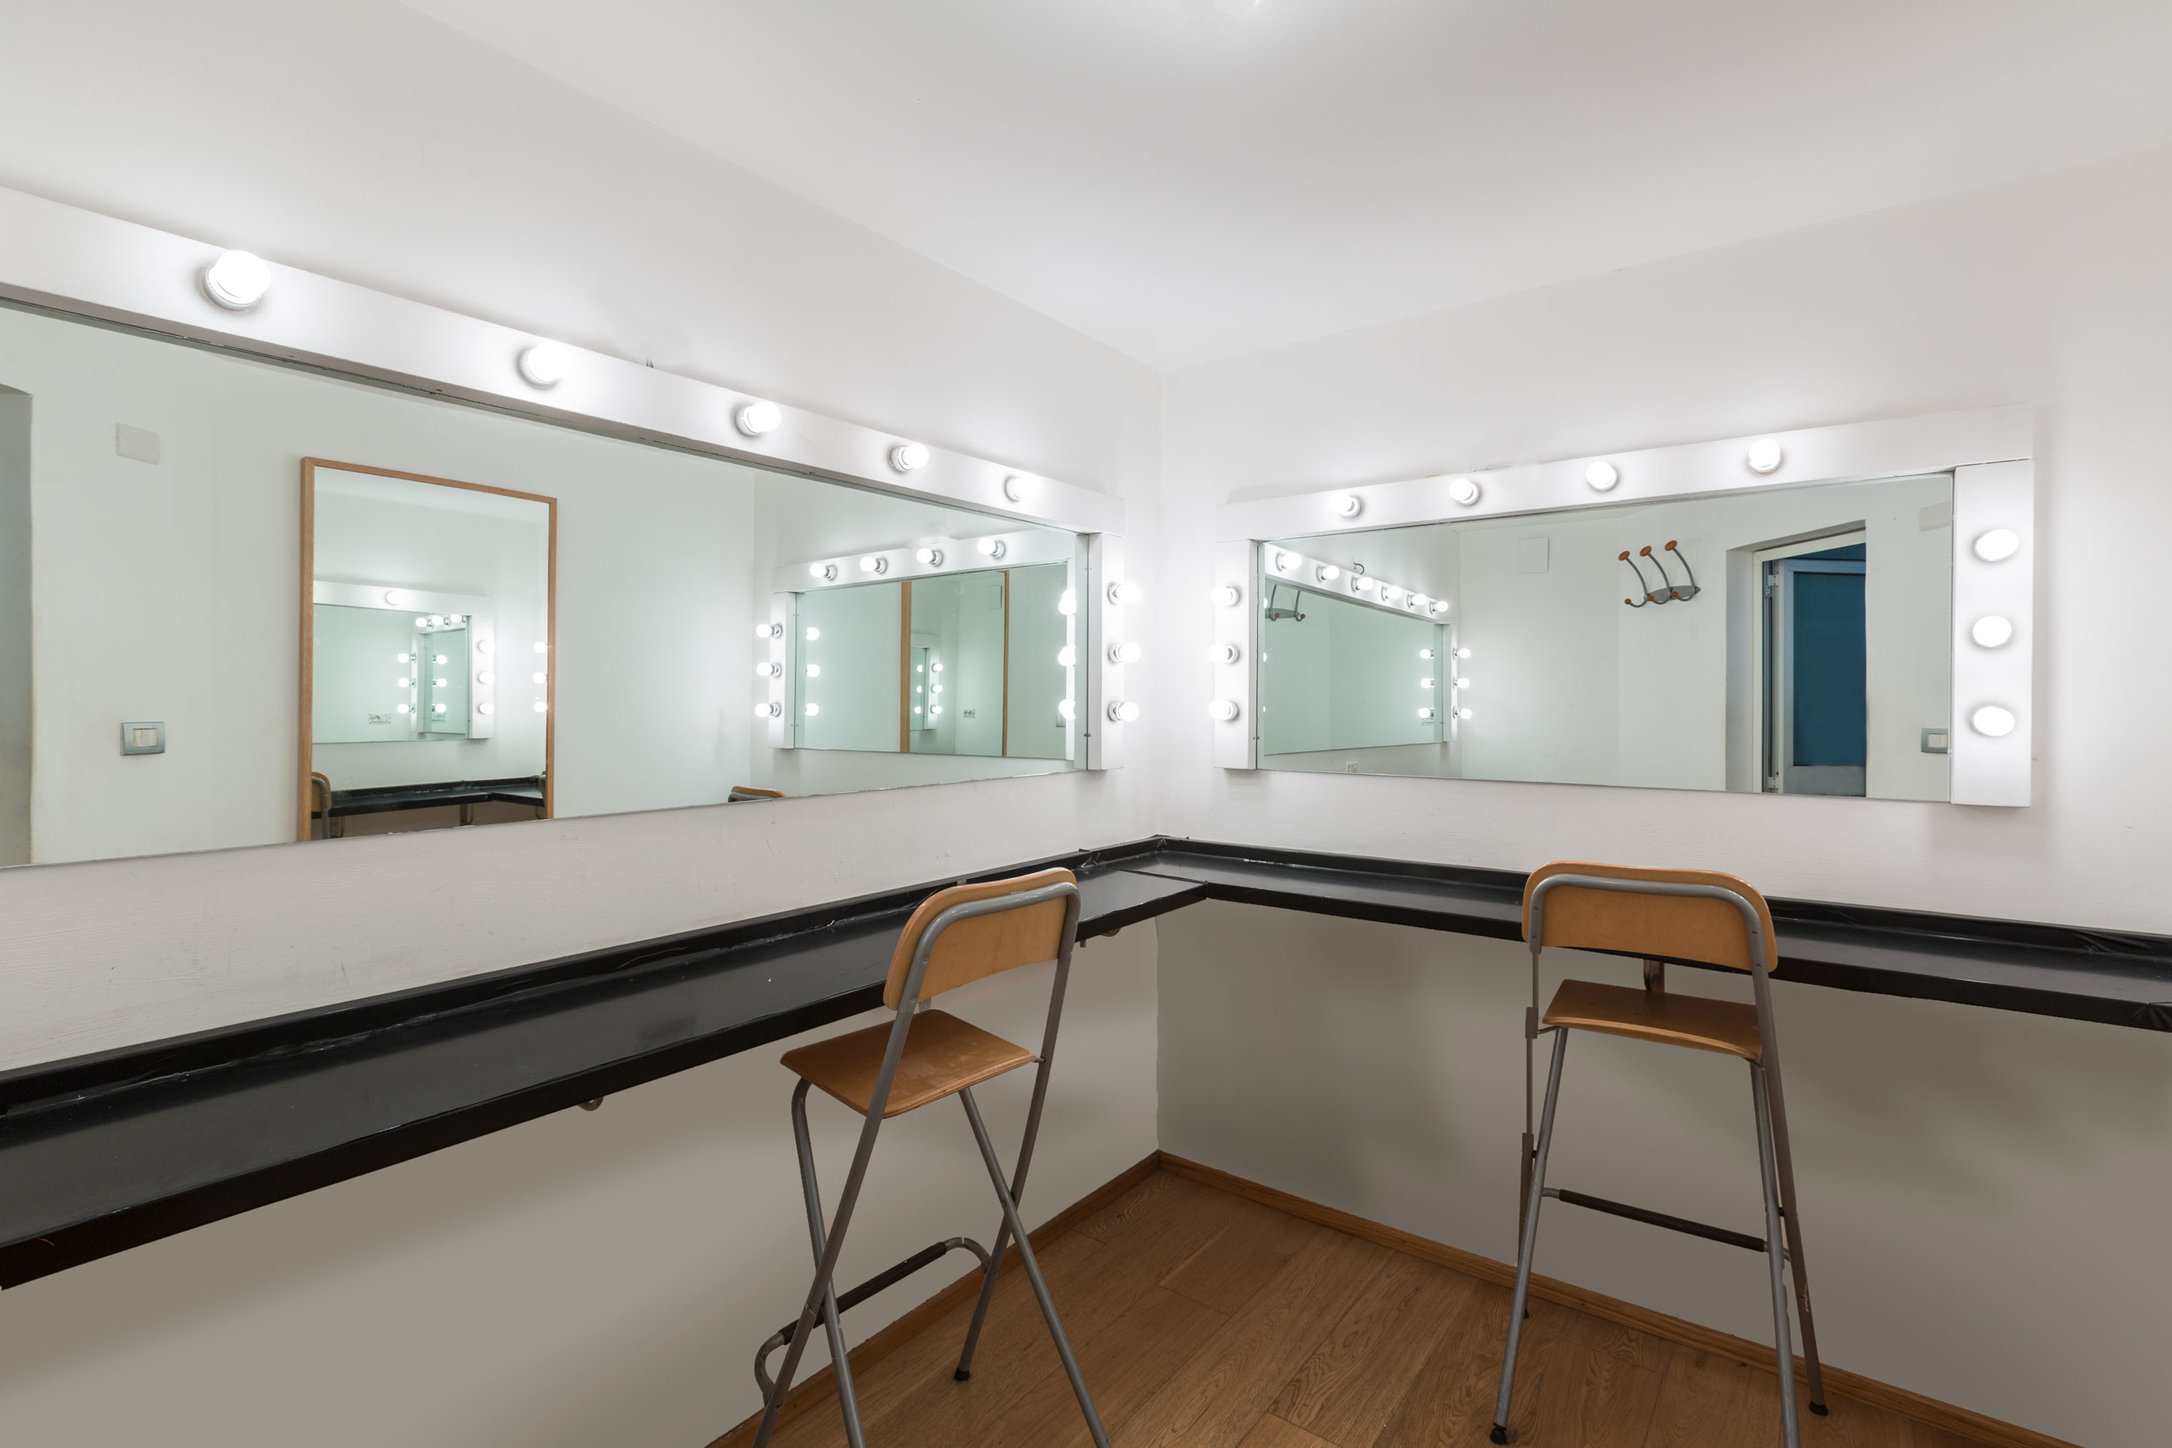 _OR_9348-Modifica_Sala-trucco.jpg